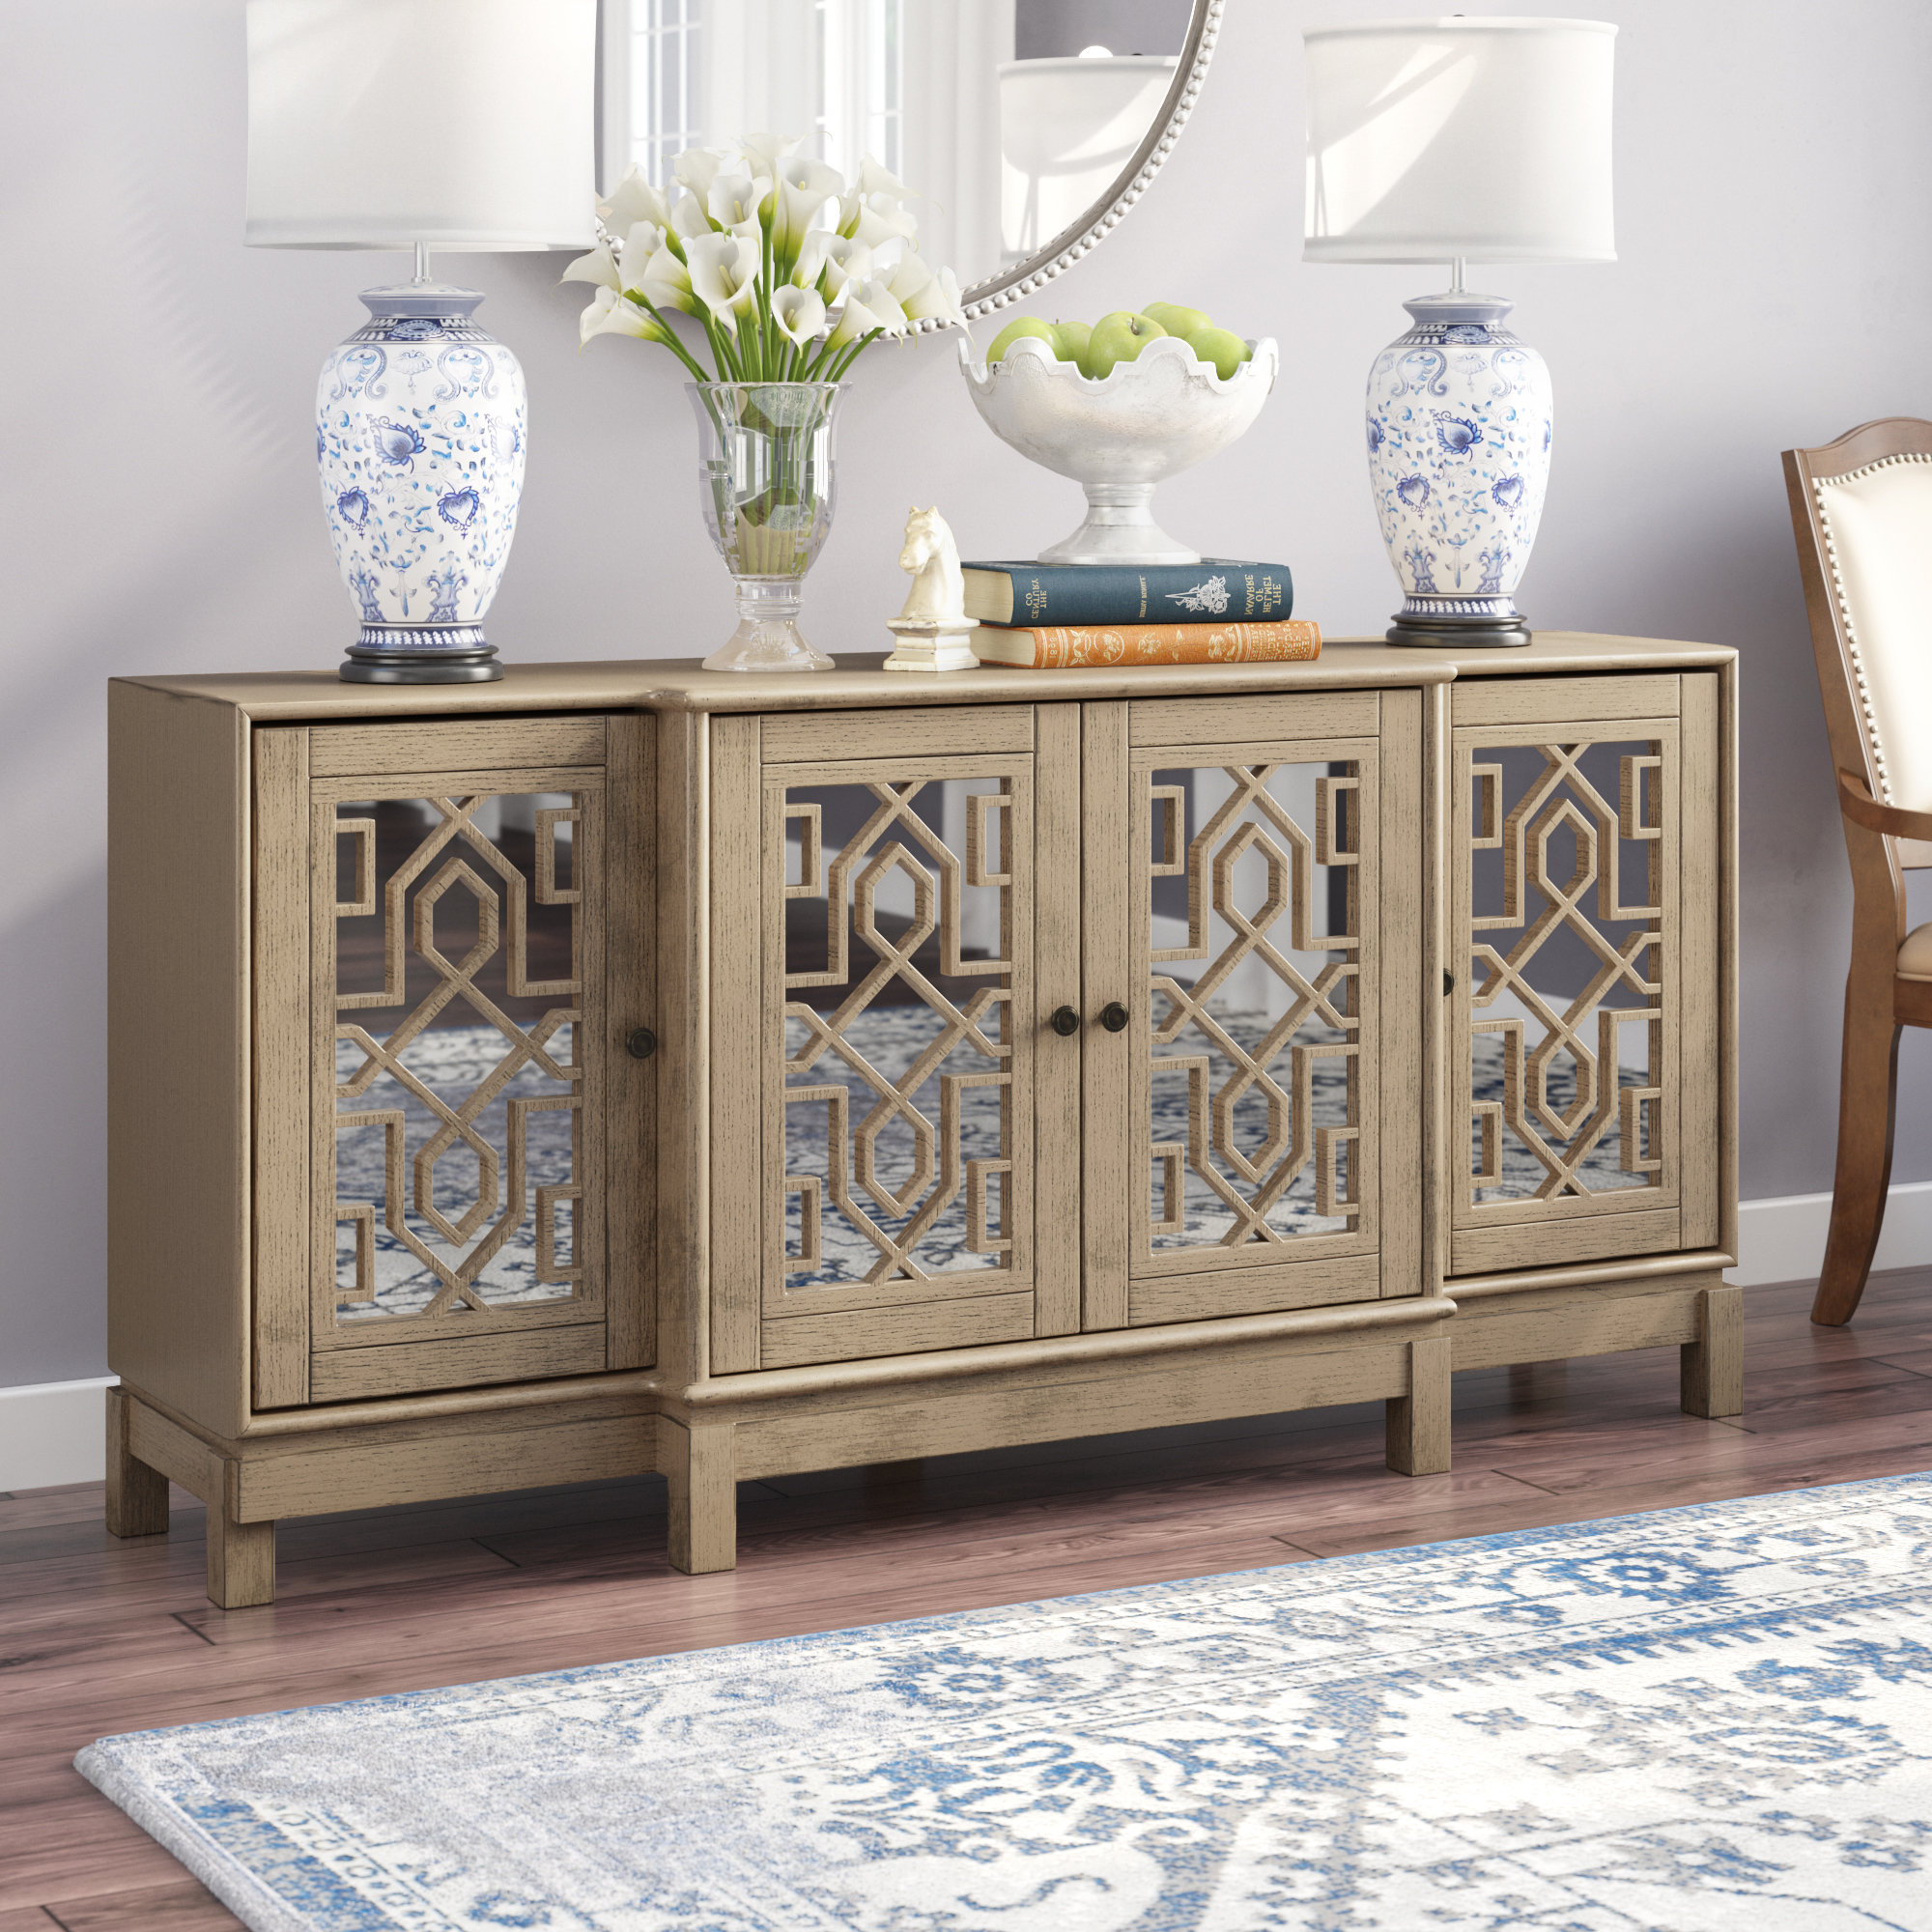 Vintage Sideboard | Wayfair Within Hayslett Sideboards (Gallery 20 of 20)